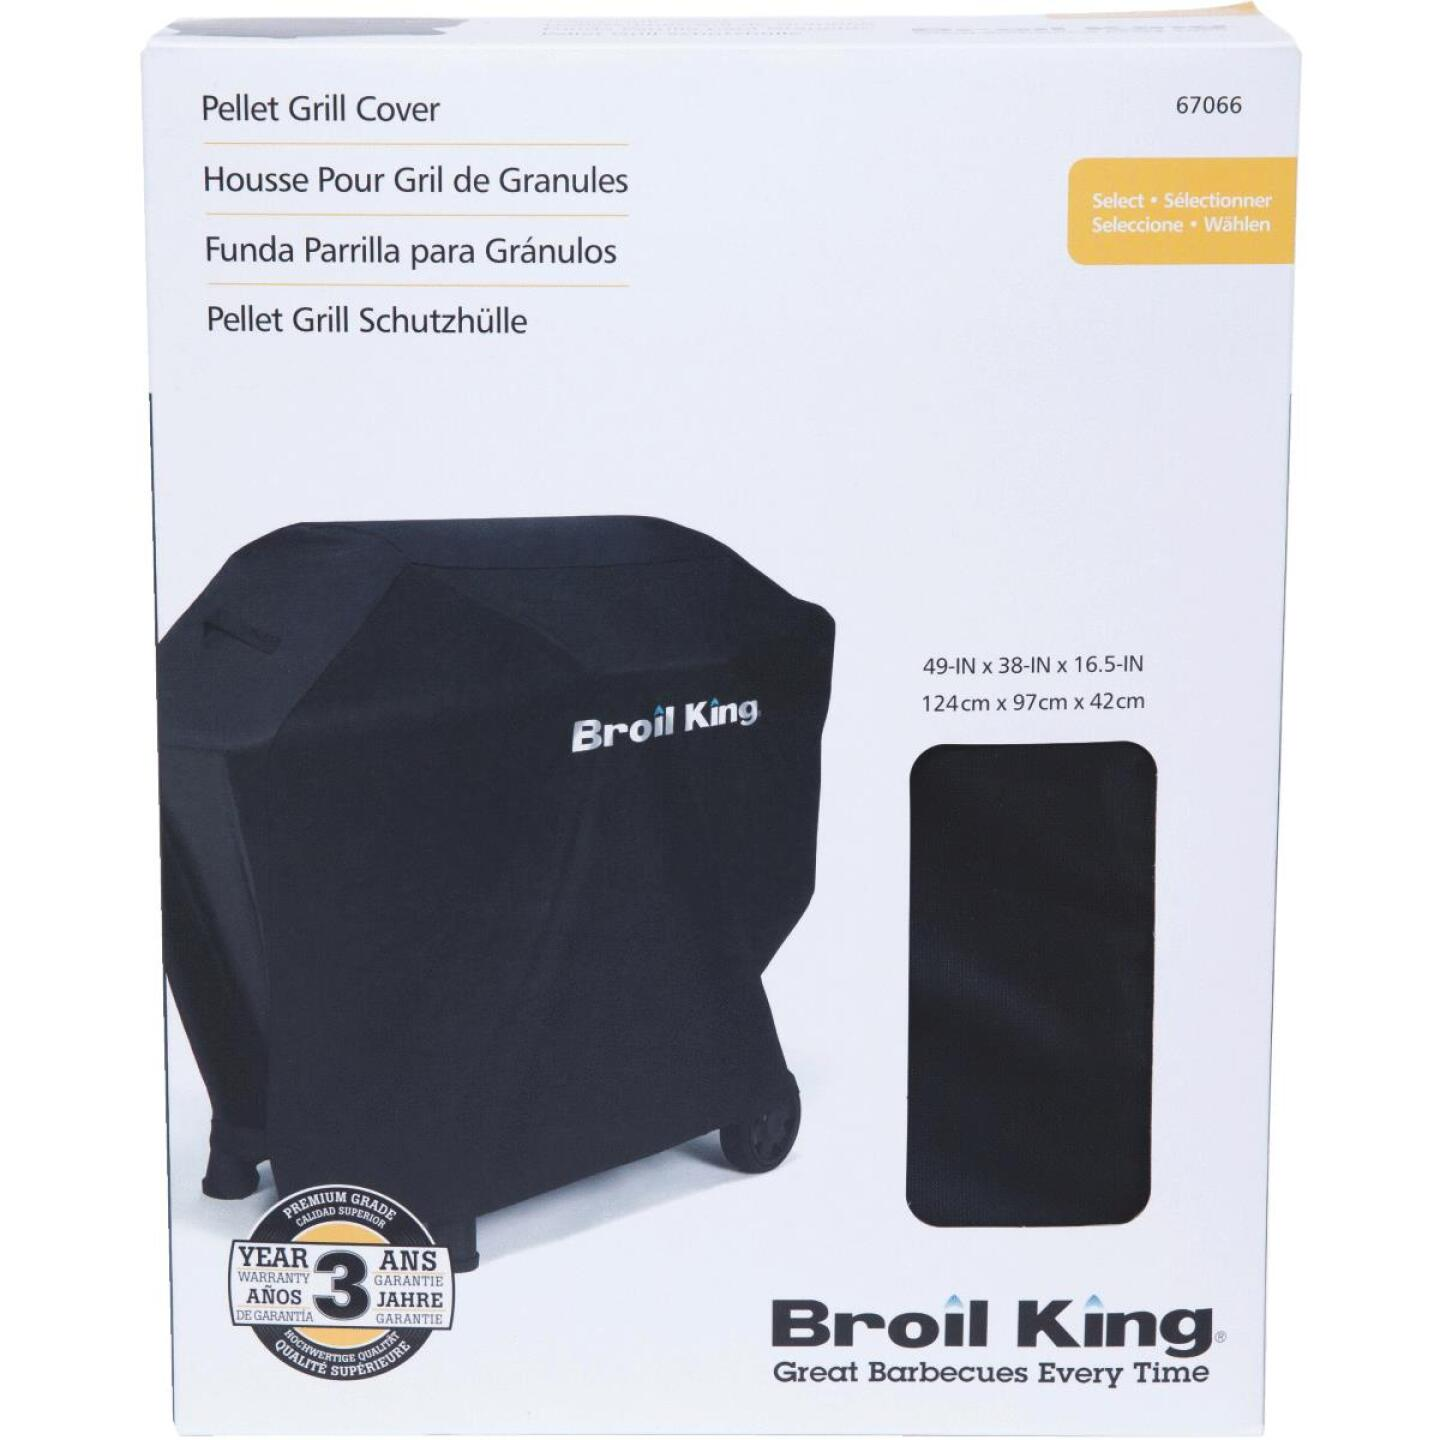 Broil King Baron Pellet 500 49 In. Black Grill Cover Image 1